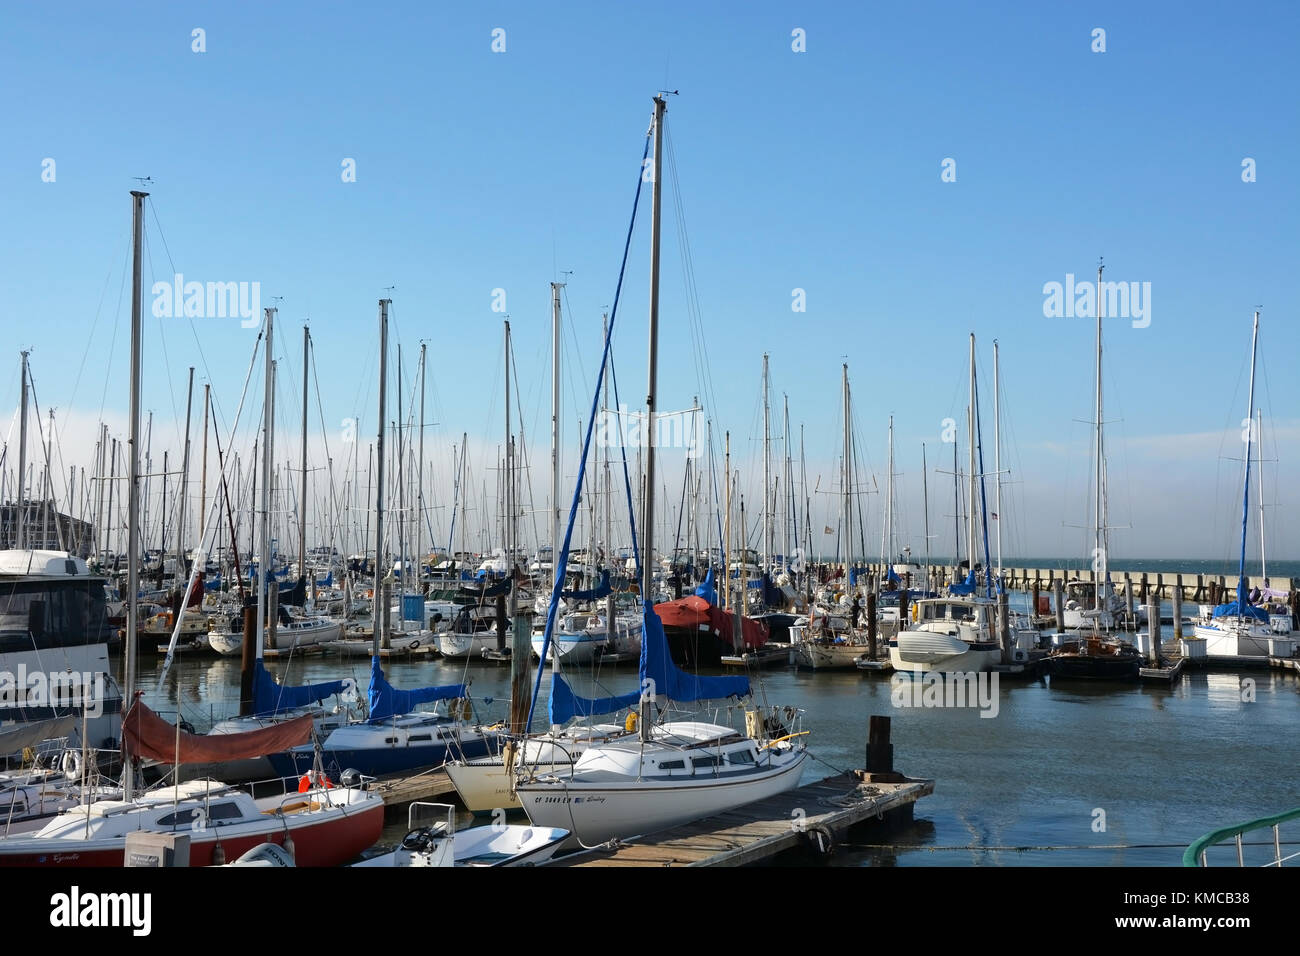 SAN FRANCISCO - AUGUST 17: Sailing boats at Fishermans Wharf on August 17, 2013 in San Francisco, USA. Fishermans Stock Photo